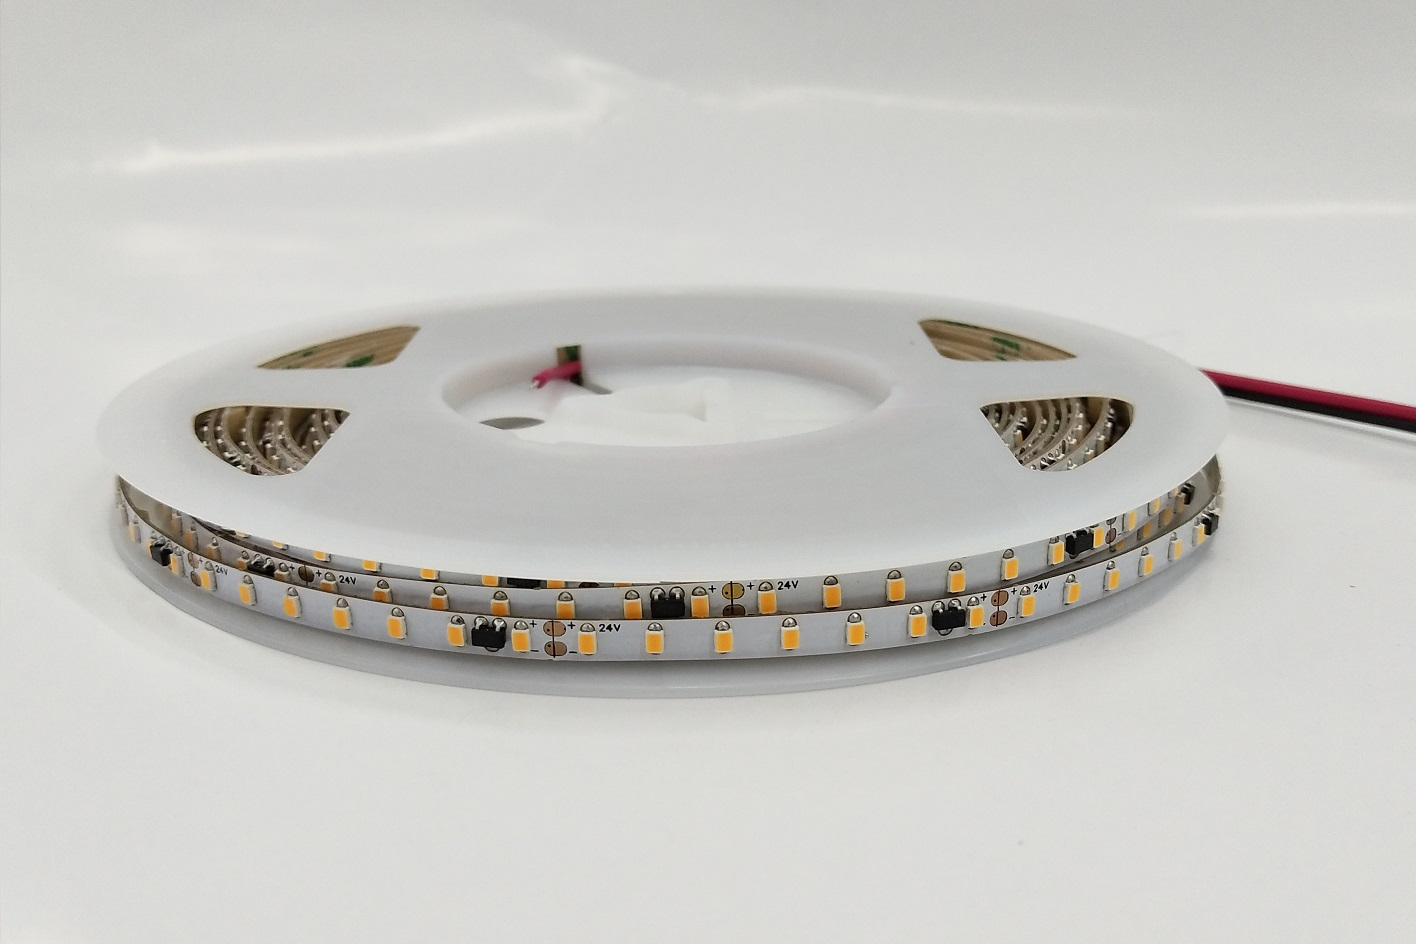 Super narrow 3.5mm 4mm 5mm 6mm width led strip